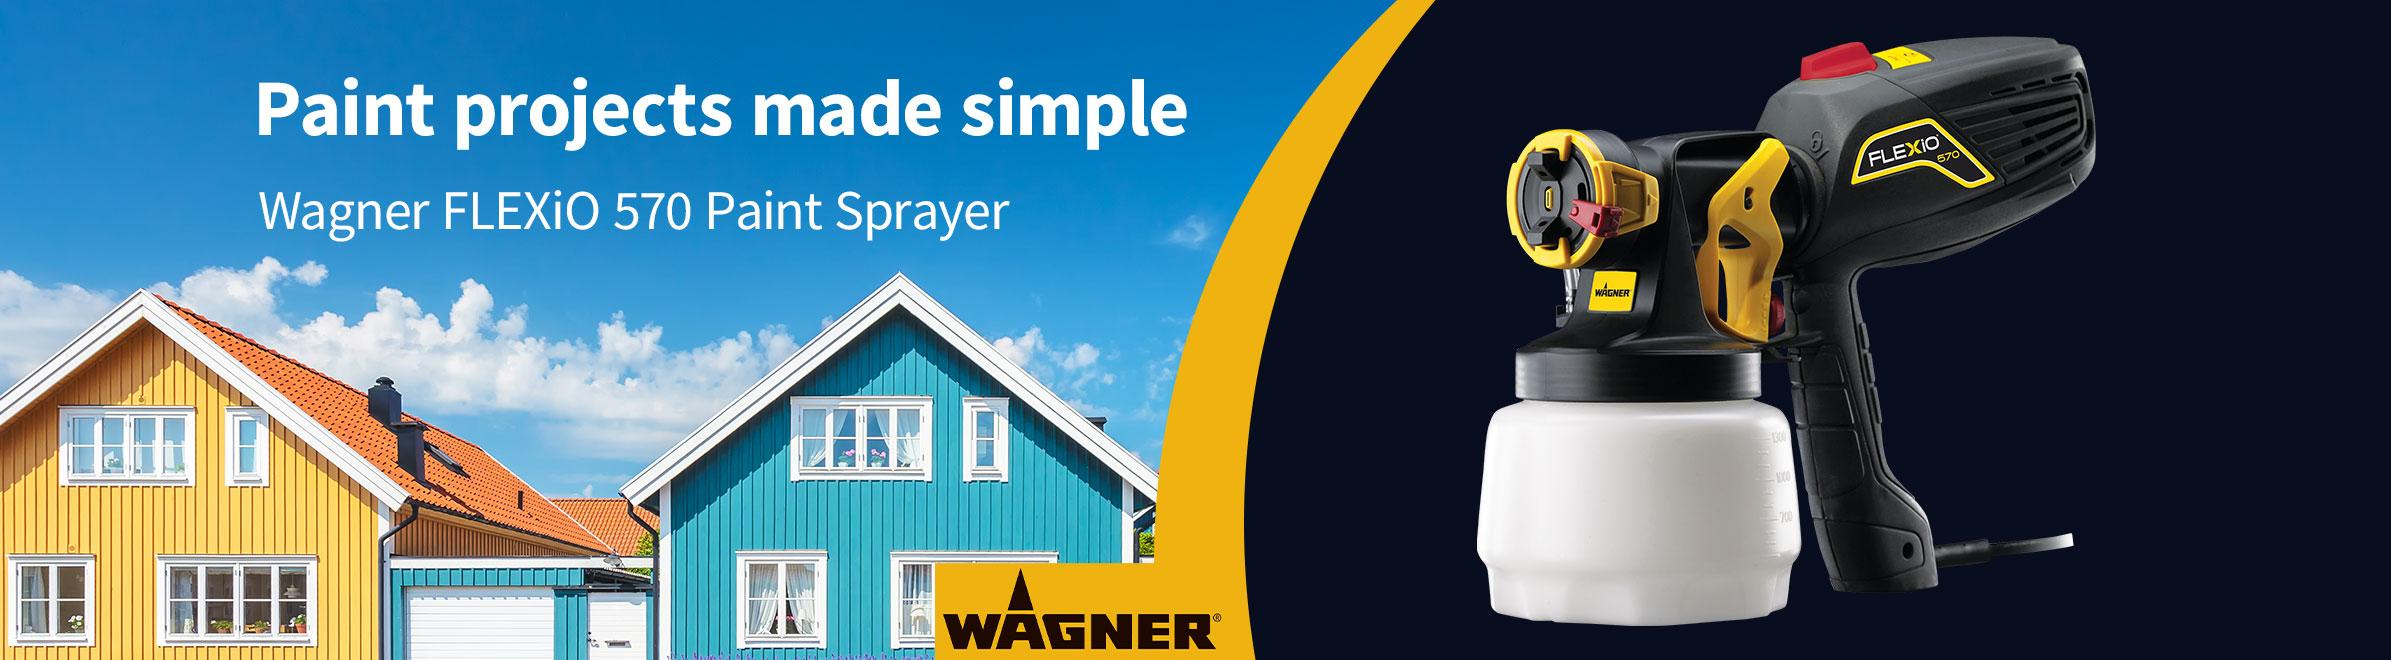 Wagner Paint Sprayer